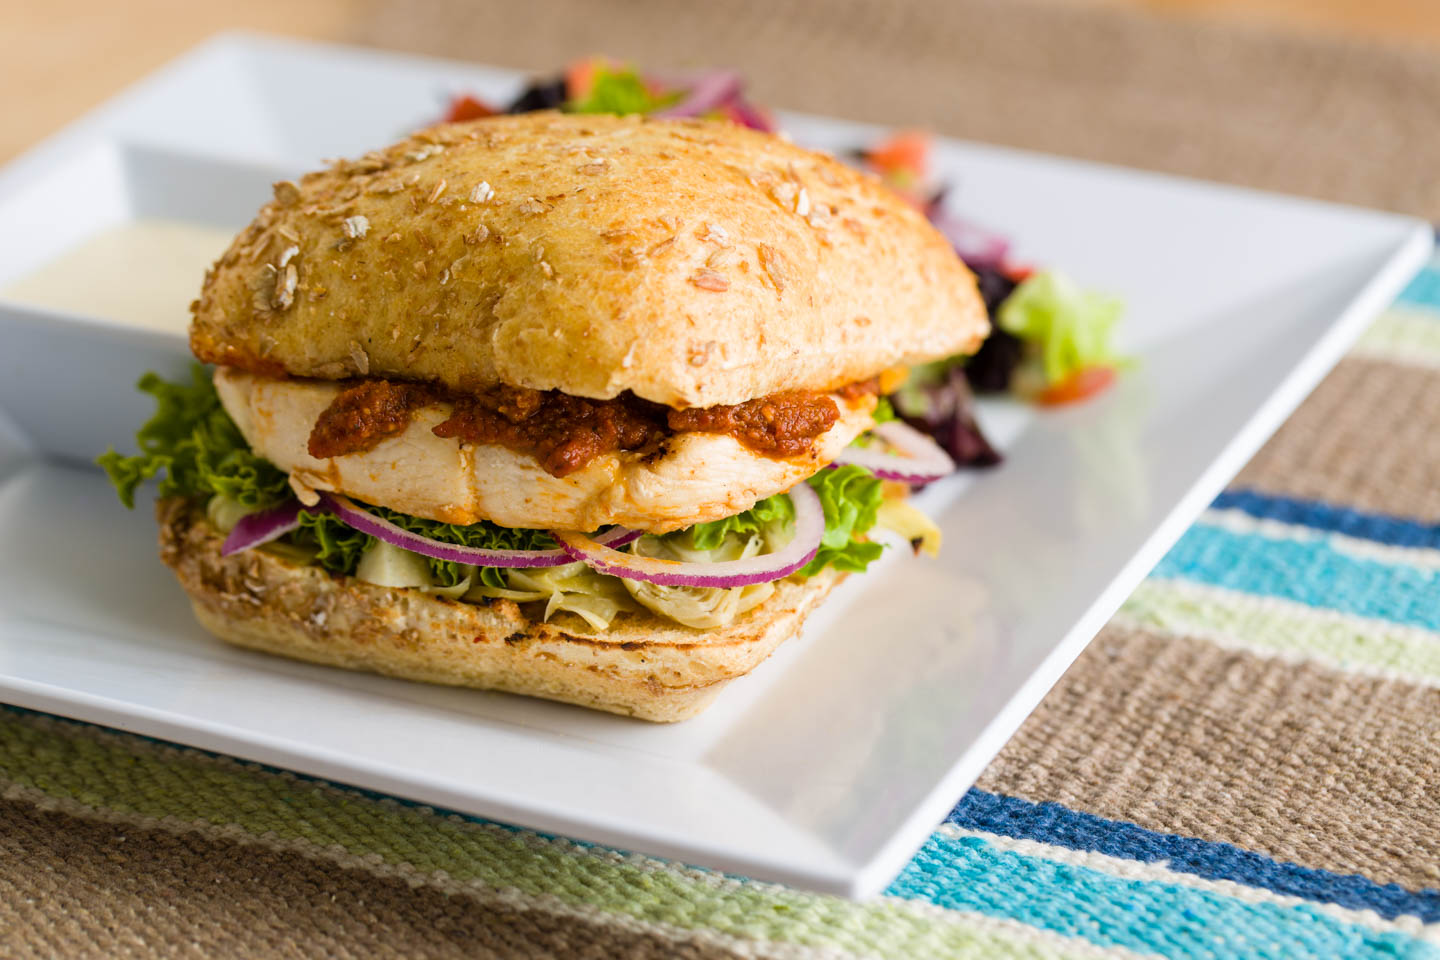 Sundried tomato Chicken Sandwich